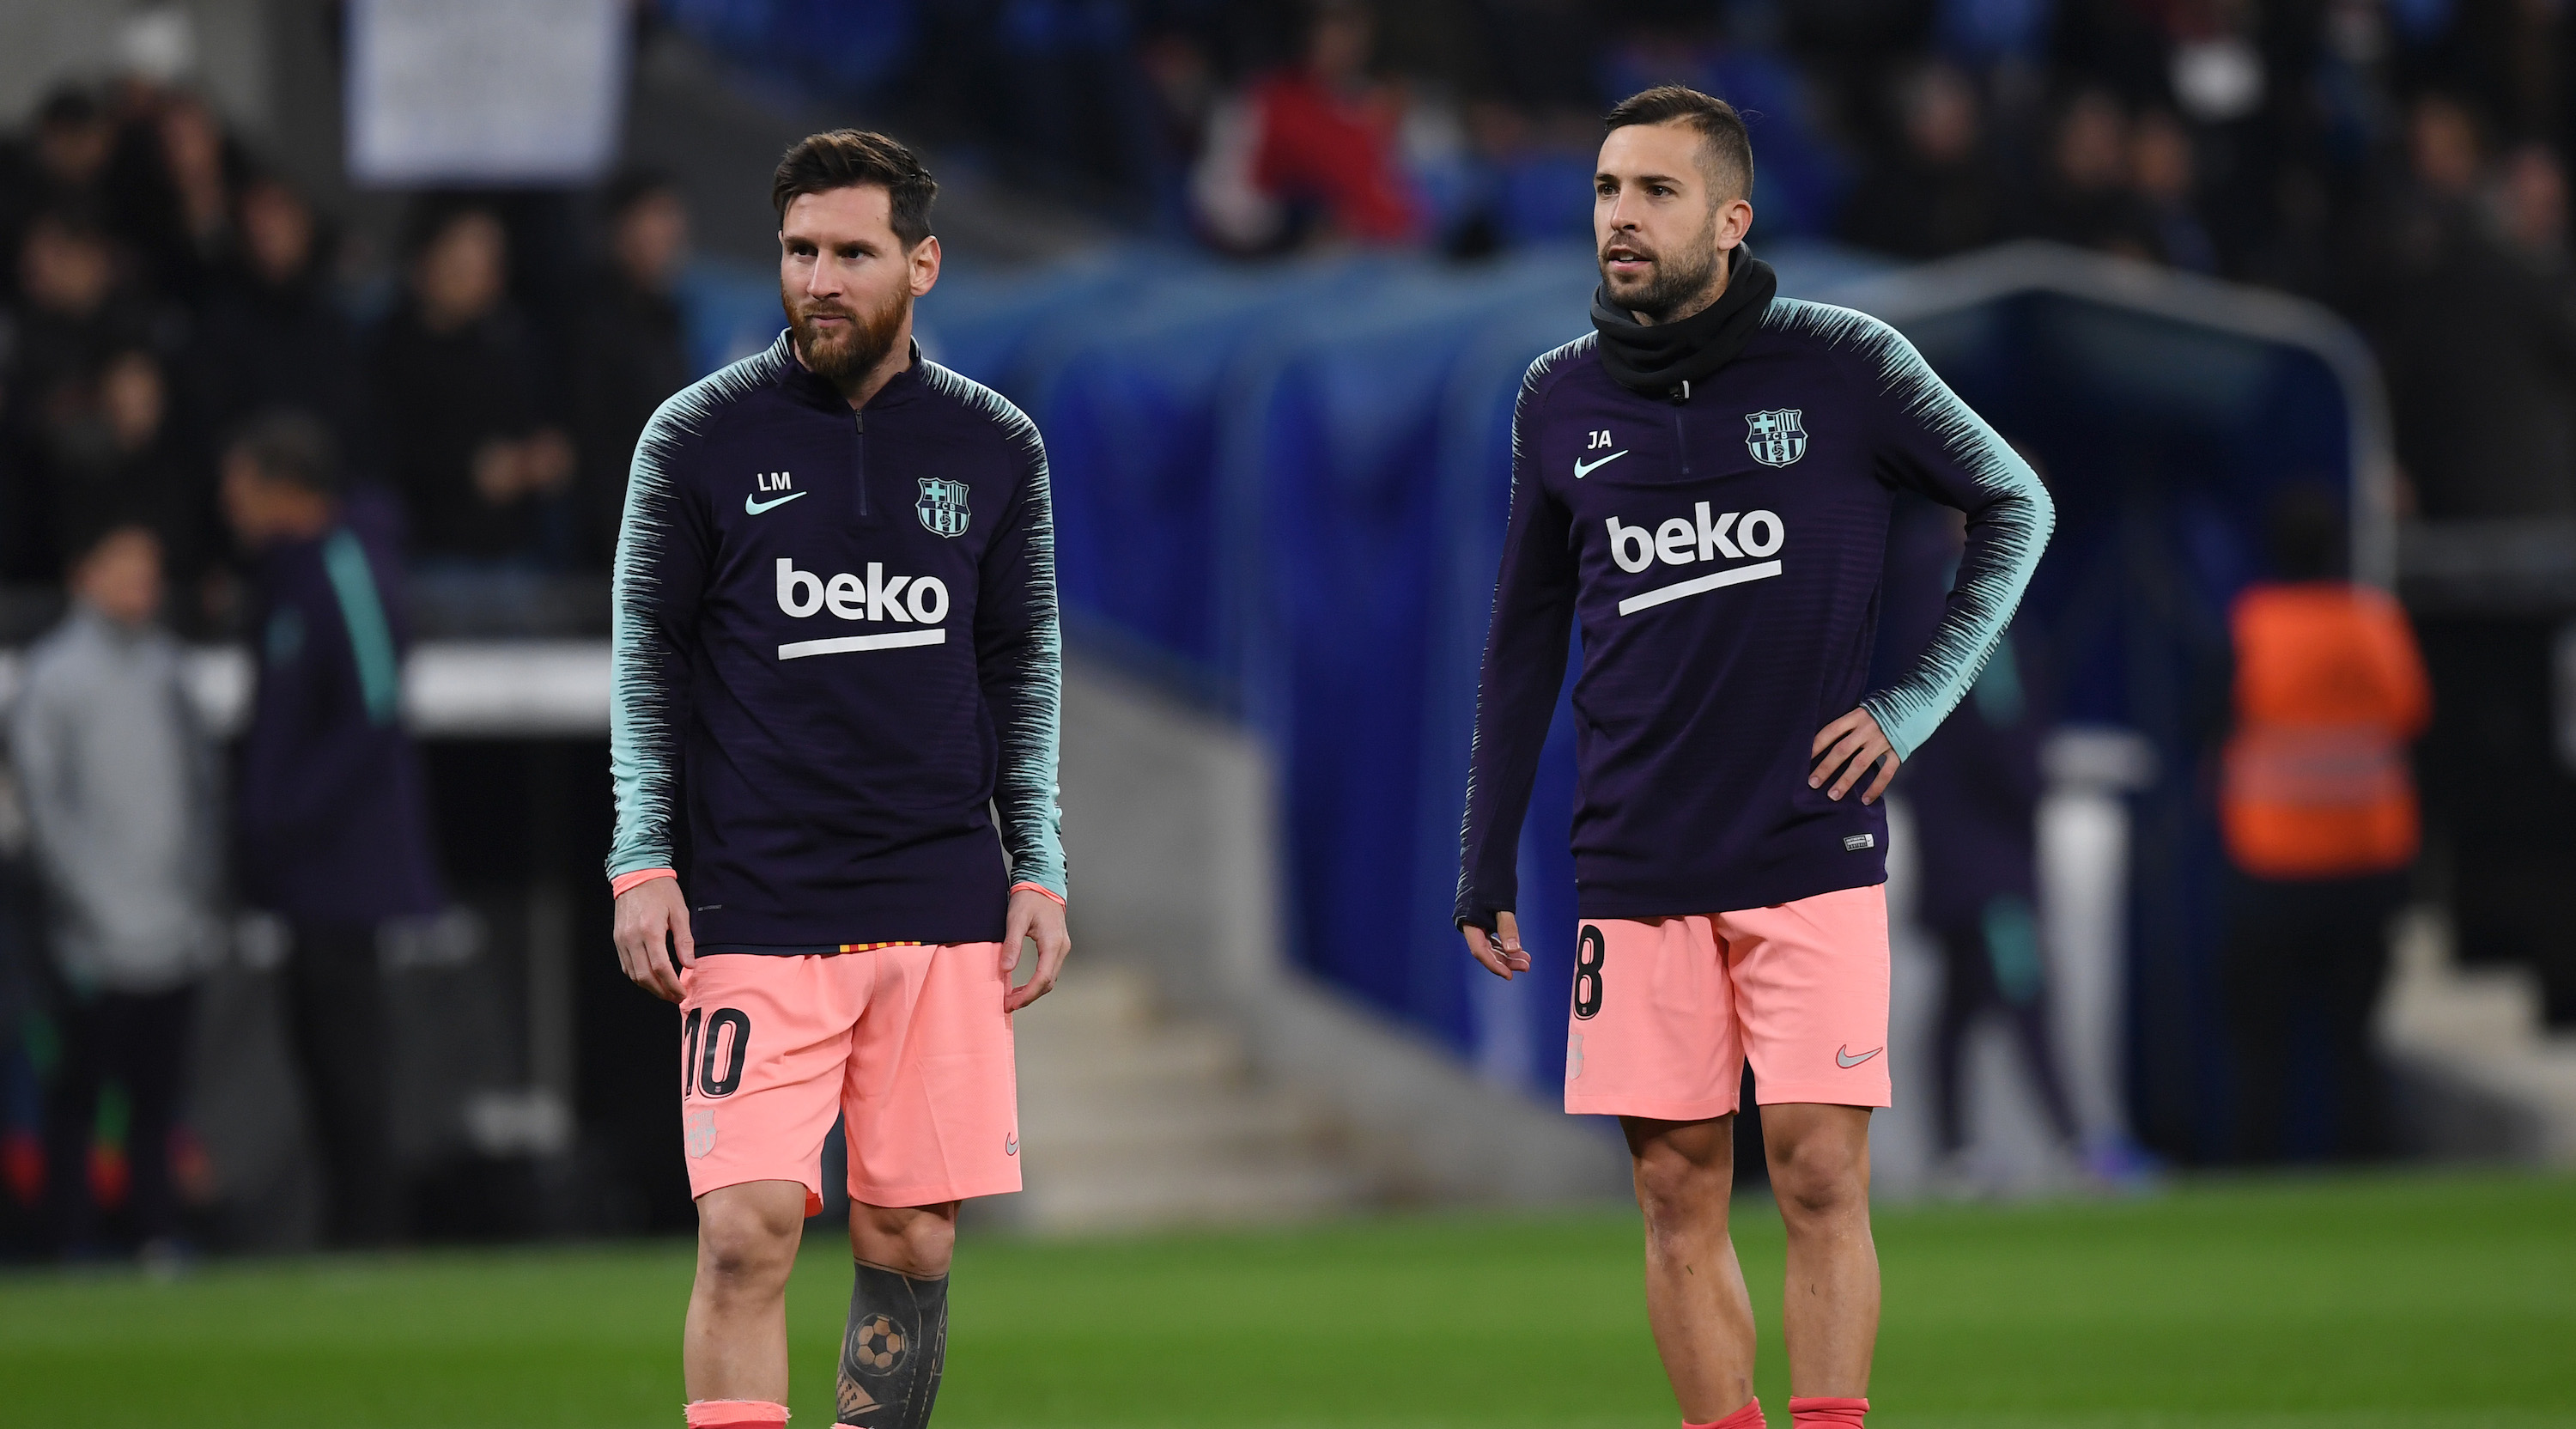 BARCELONA, SPAIN - DECEMBER 08: Lionel Messi of Barcelona and Jordi Alba of Barcelona look on as they warm up prior to the La Liga match between RCD Espanyol and FC Barcelona at RCDE Stadium on December 8, 2018 in Barcelona, Spain. (Photo by Alex Caparros/Getty Images)